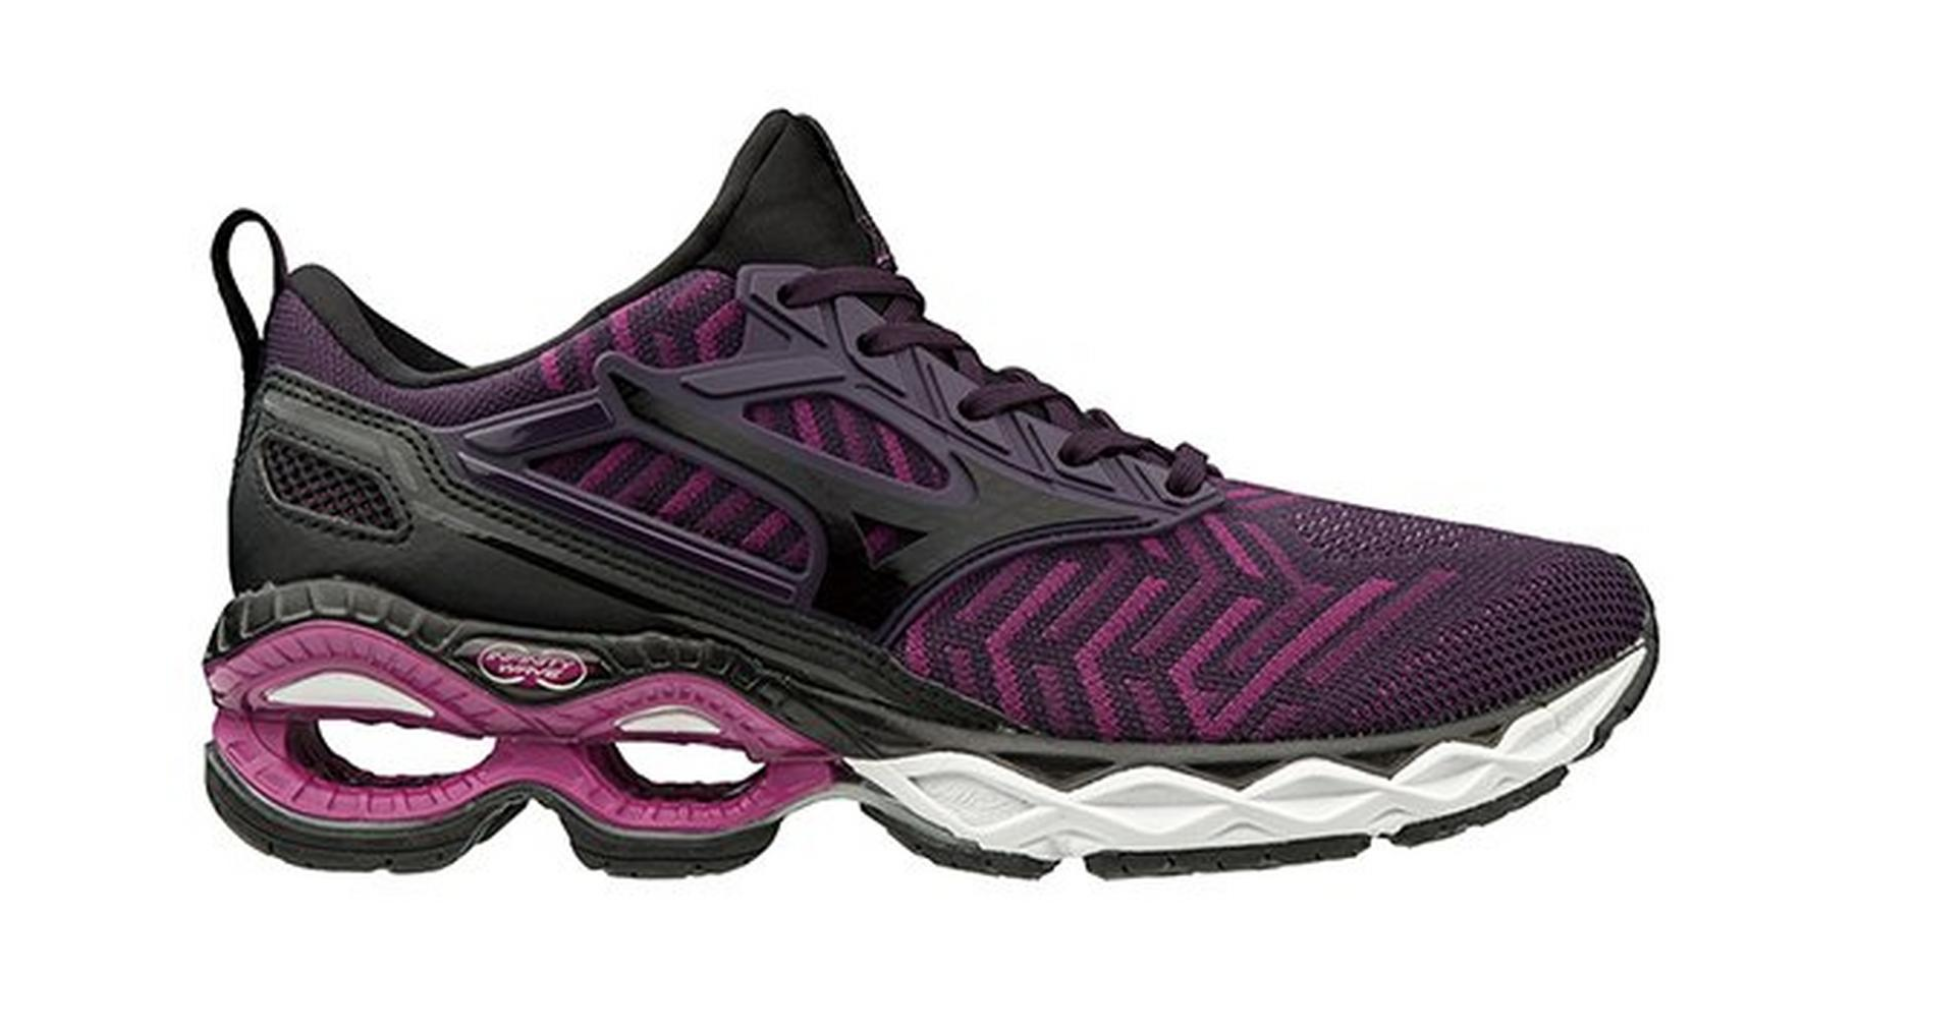 best mizuno running shoes for overpronation growth